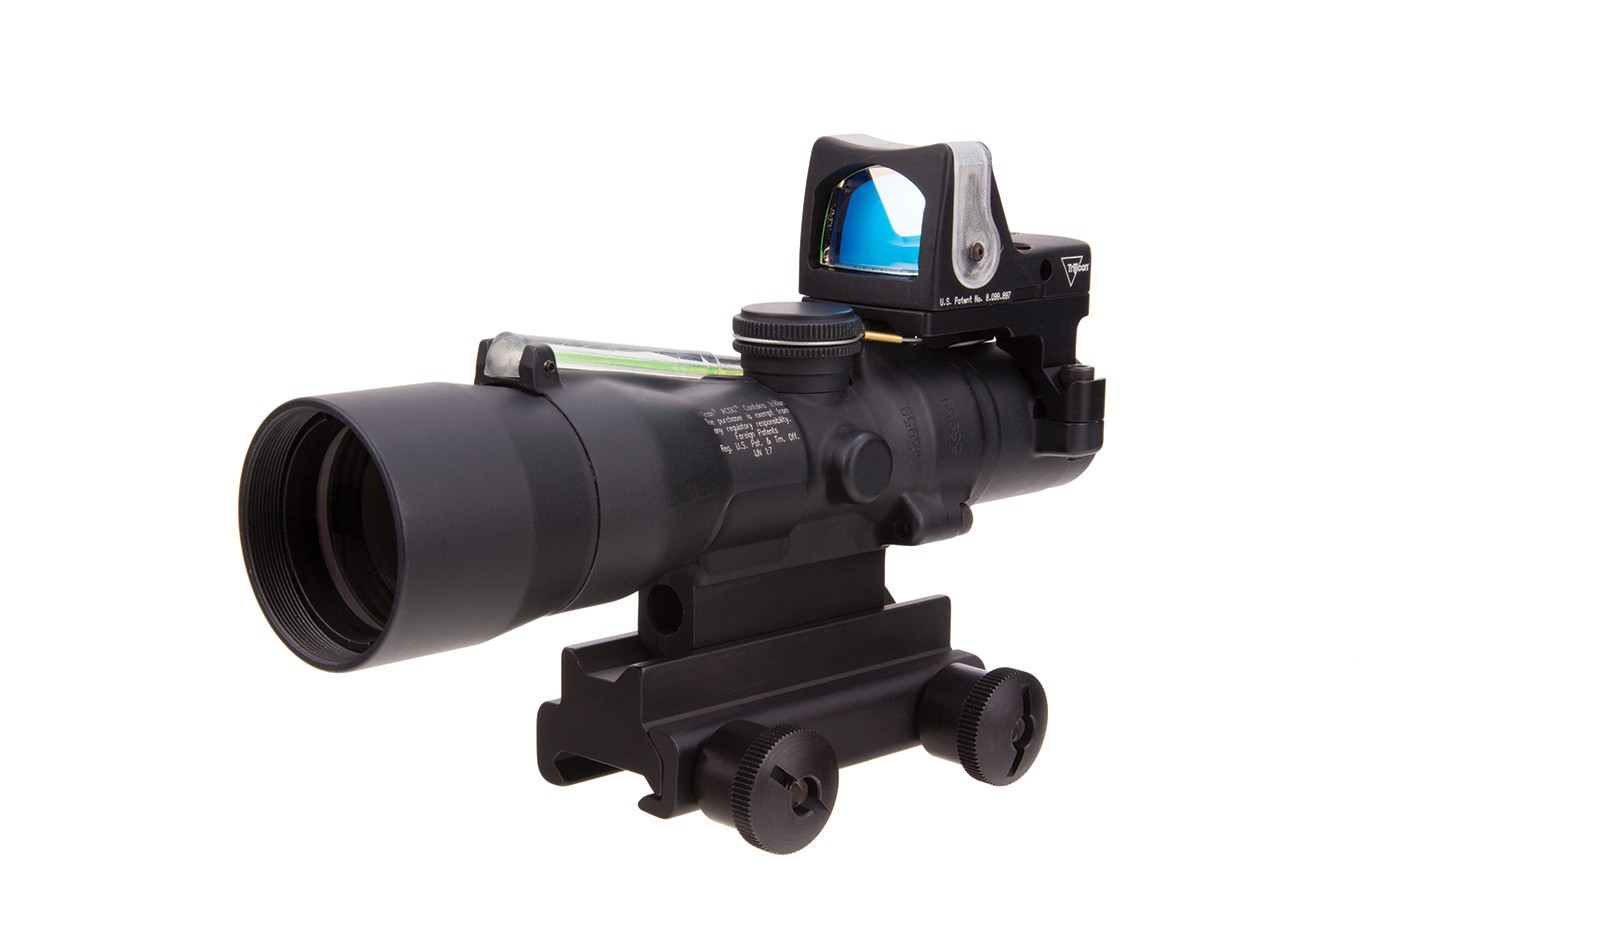 Trijicon ACOG® 3x30 BAC Riflescope with Trijicon RMR® - 223 / 62gr